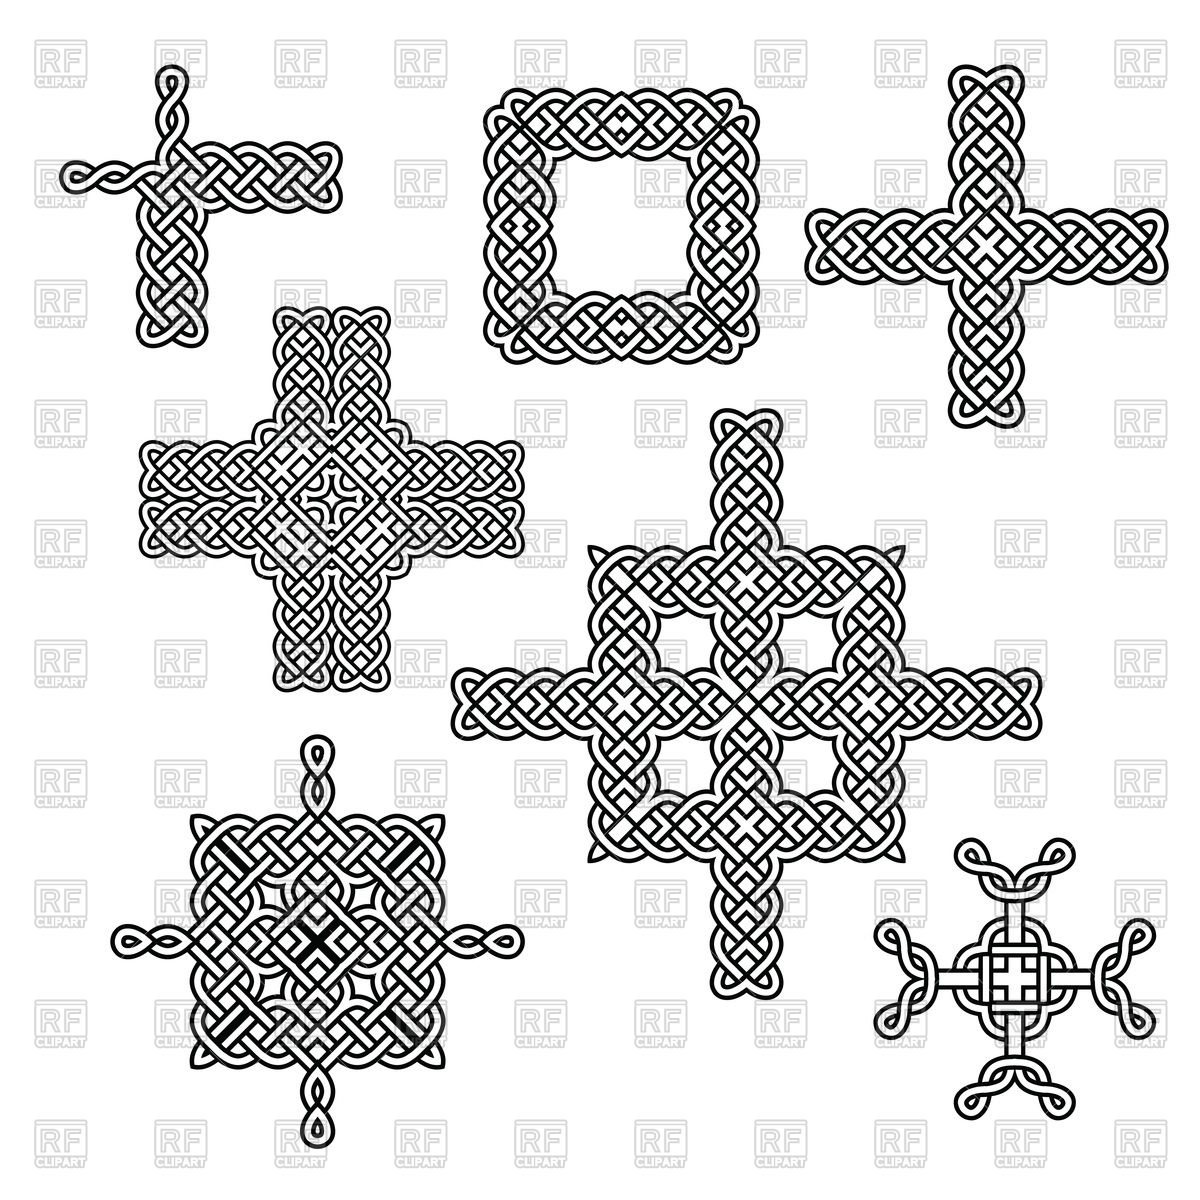 1200x1200 Celtic Knot Borders And Crosses